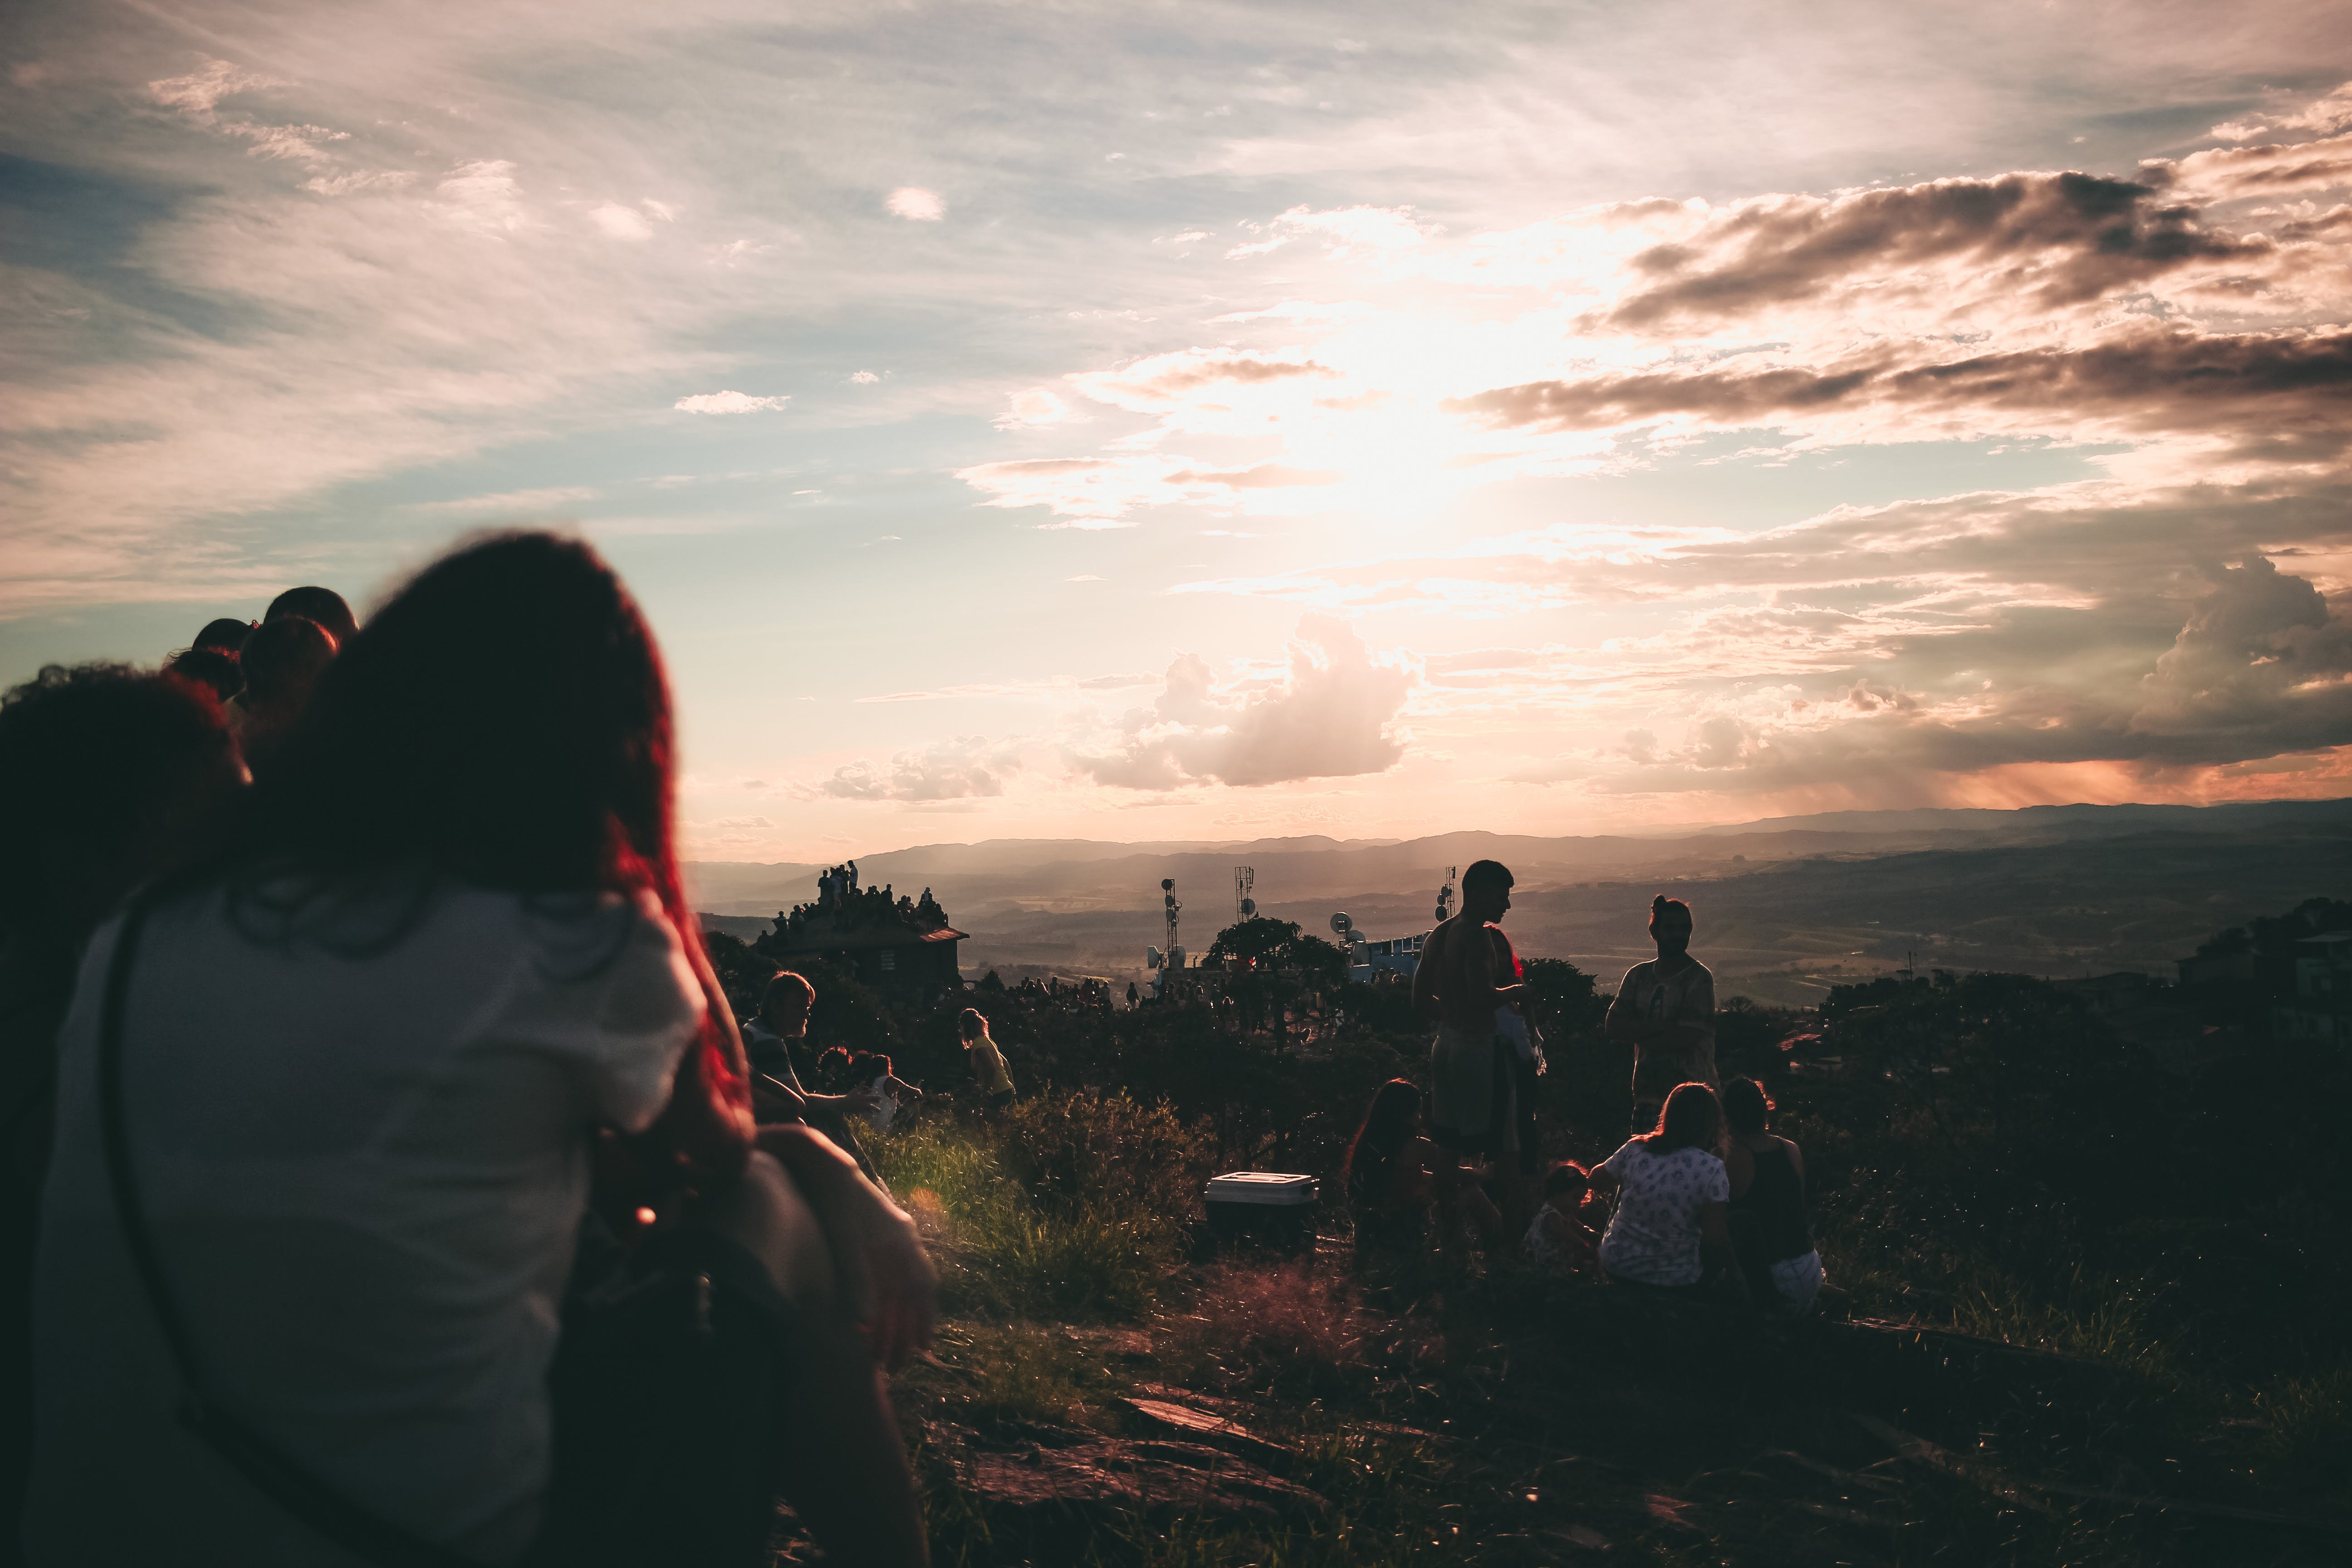 Silhouette Photography of People Gathering during Sunset